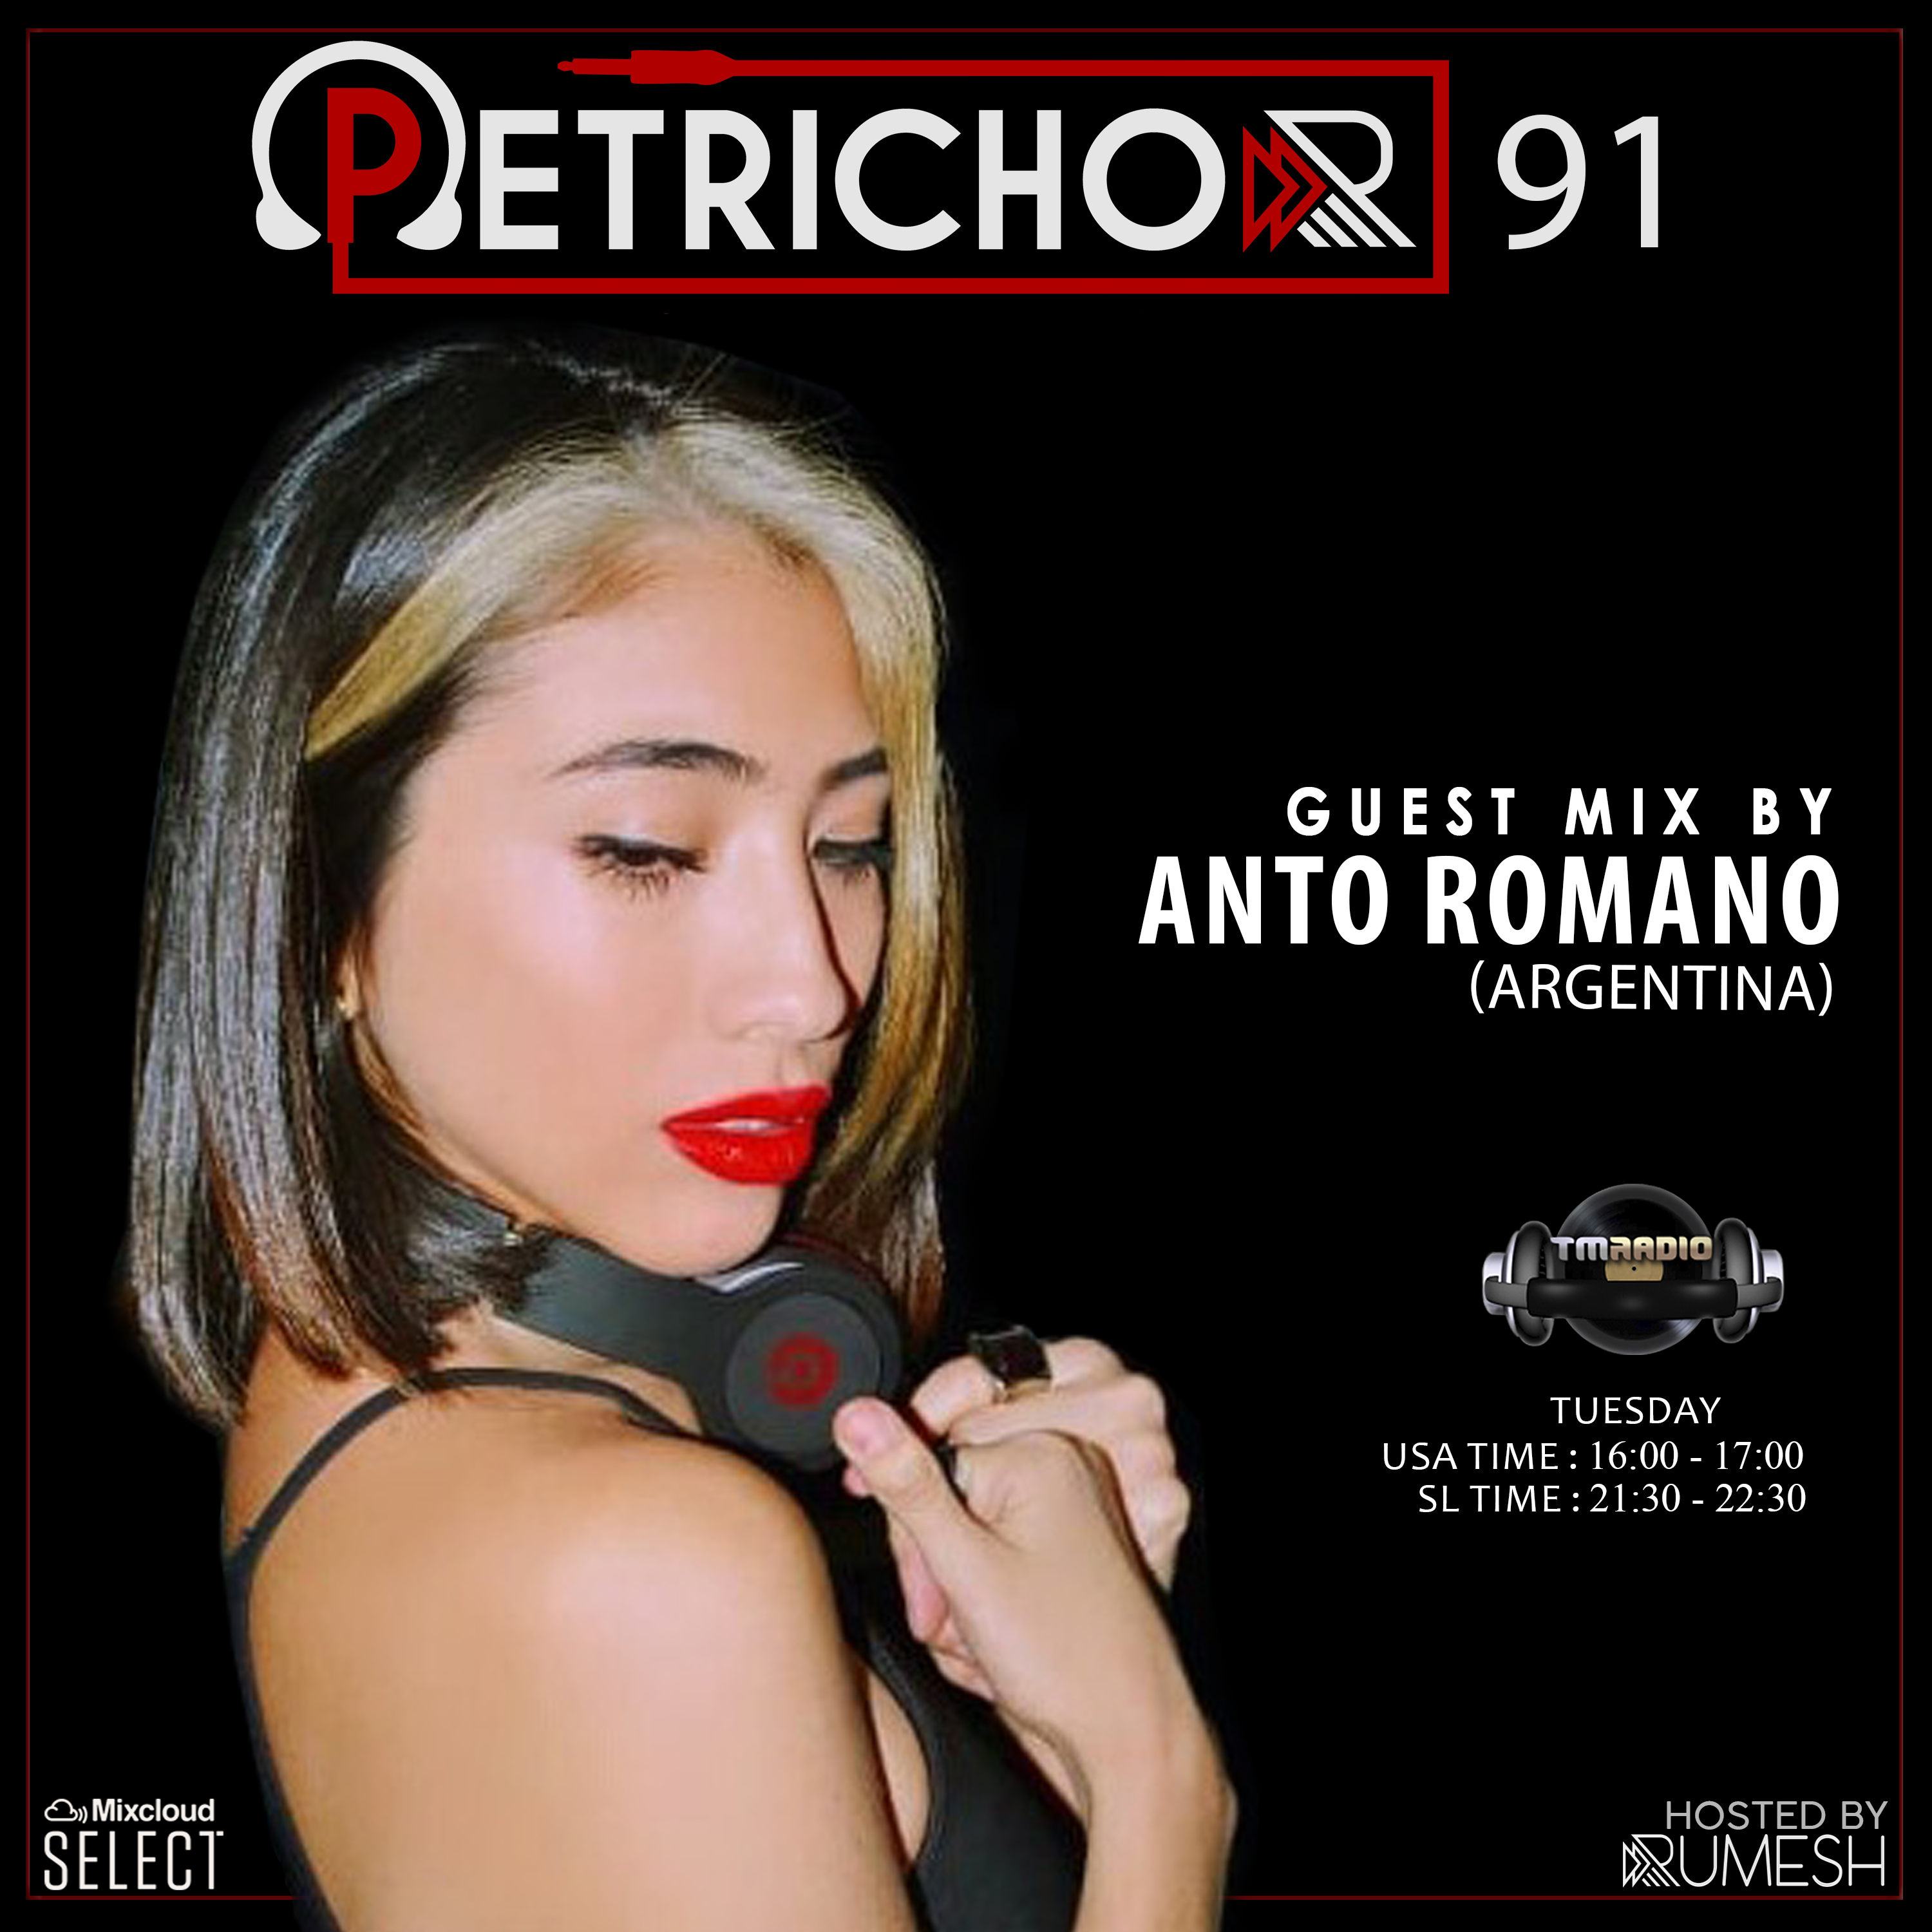 Petrichor :: Petrichor 91 guest mix by Anto Romano -(Argentina) (aired on October 6th, 2020) banner logo